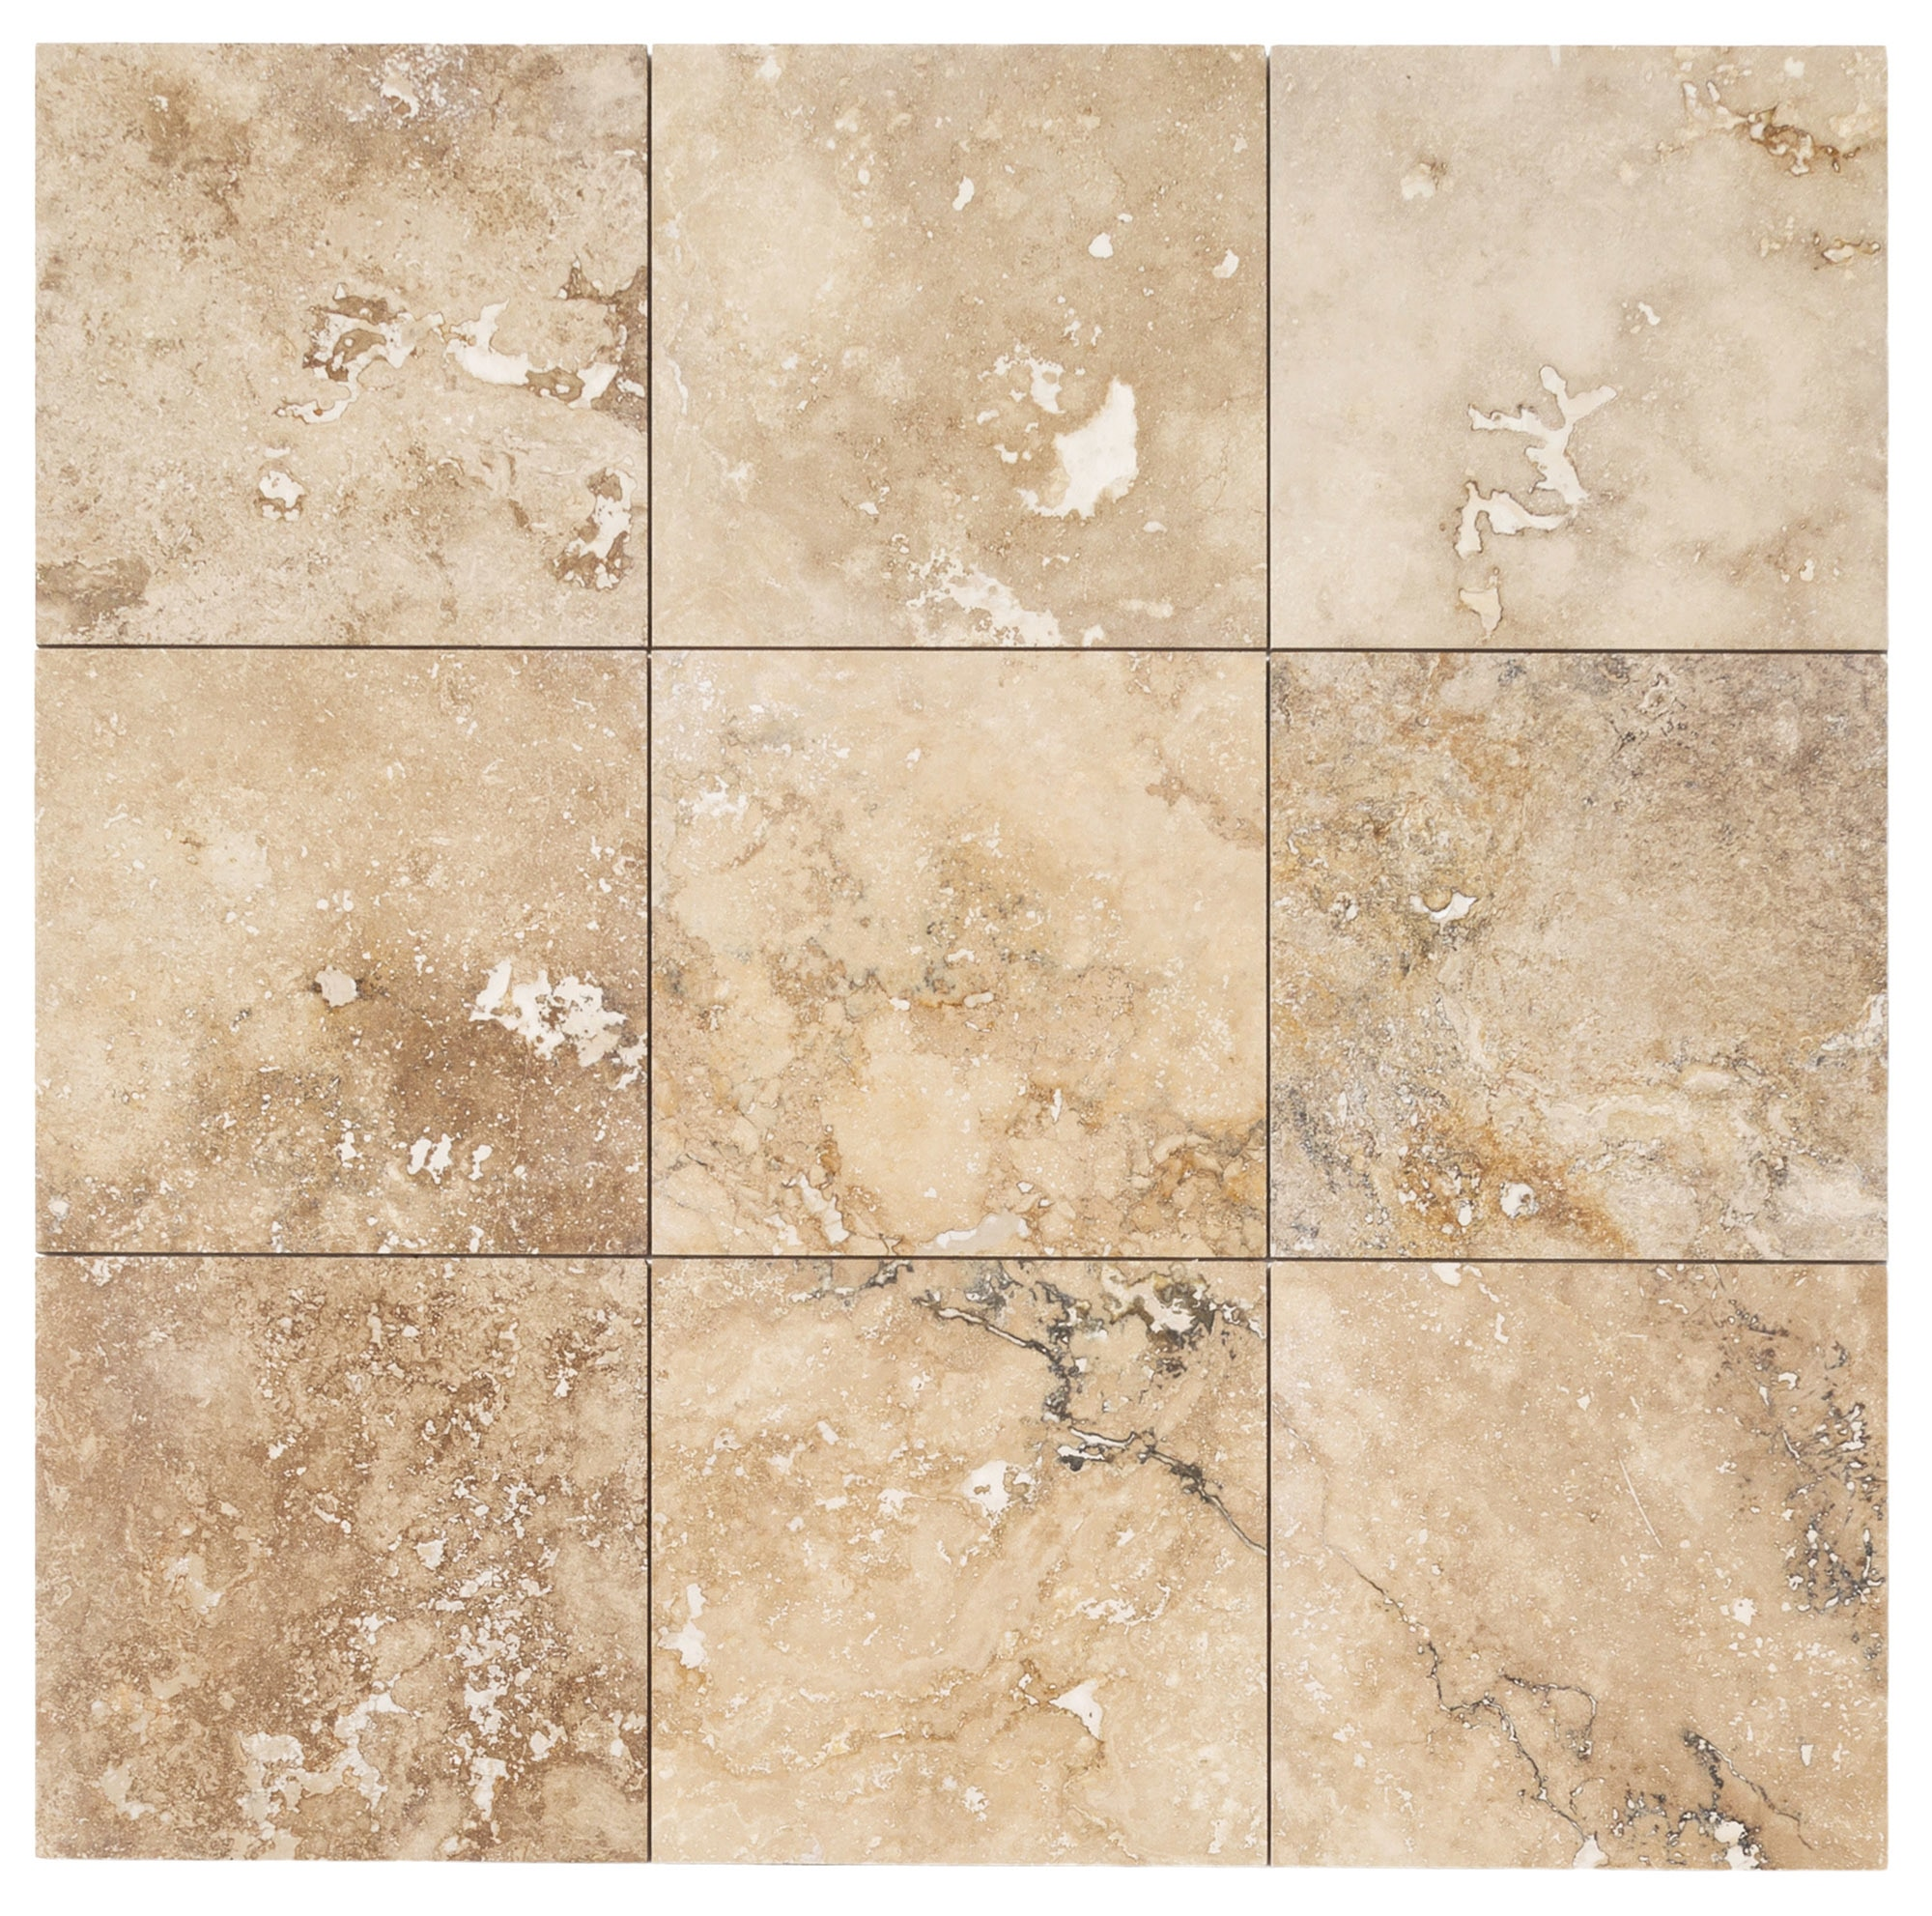 Free samples izmir travertine tile honed and filled chiaro rustic free samples izmir travertine tile honed and filled chiaro rustic beige 18x18x12 honed and filled straight edge dailygadgetfo Gallery